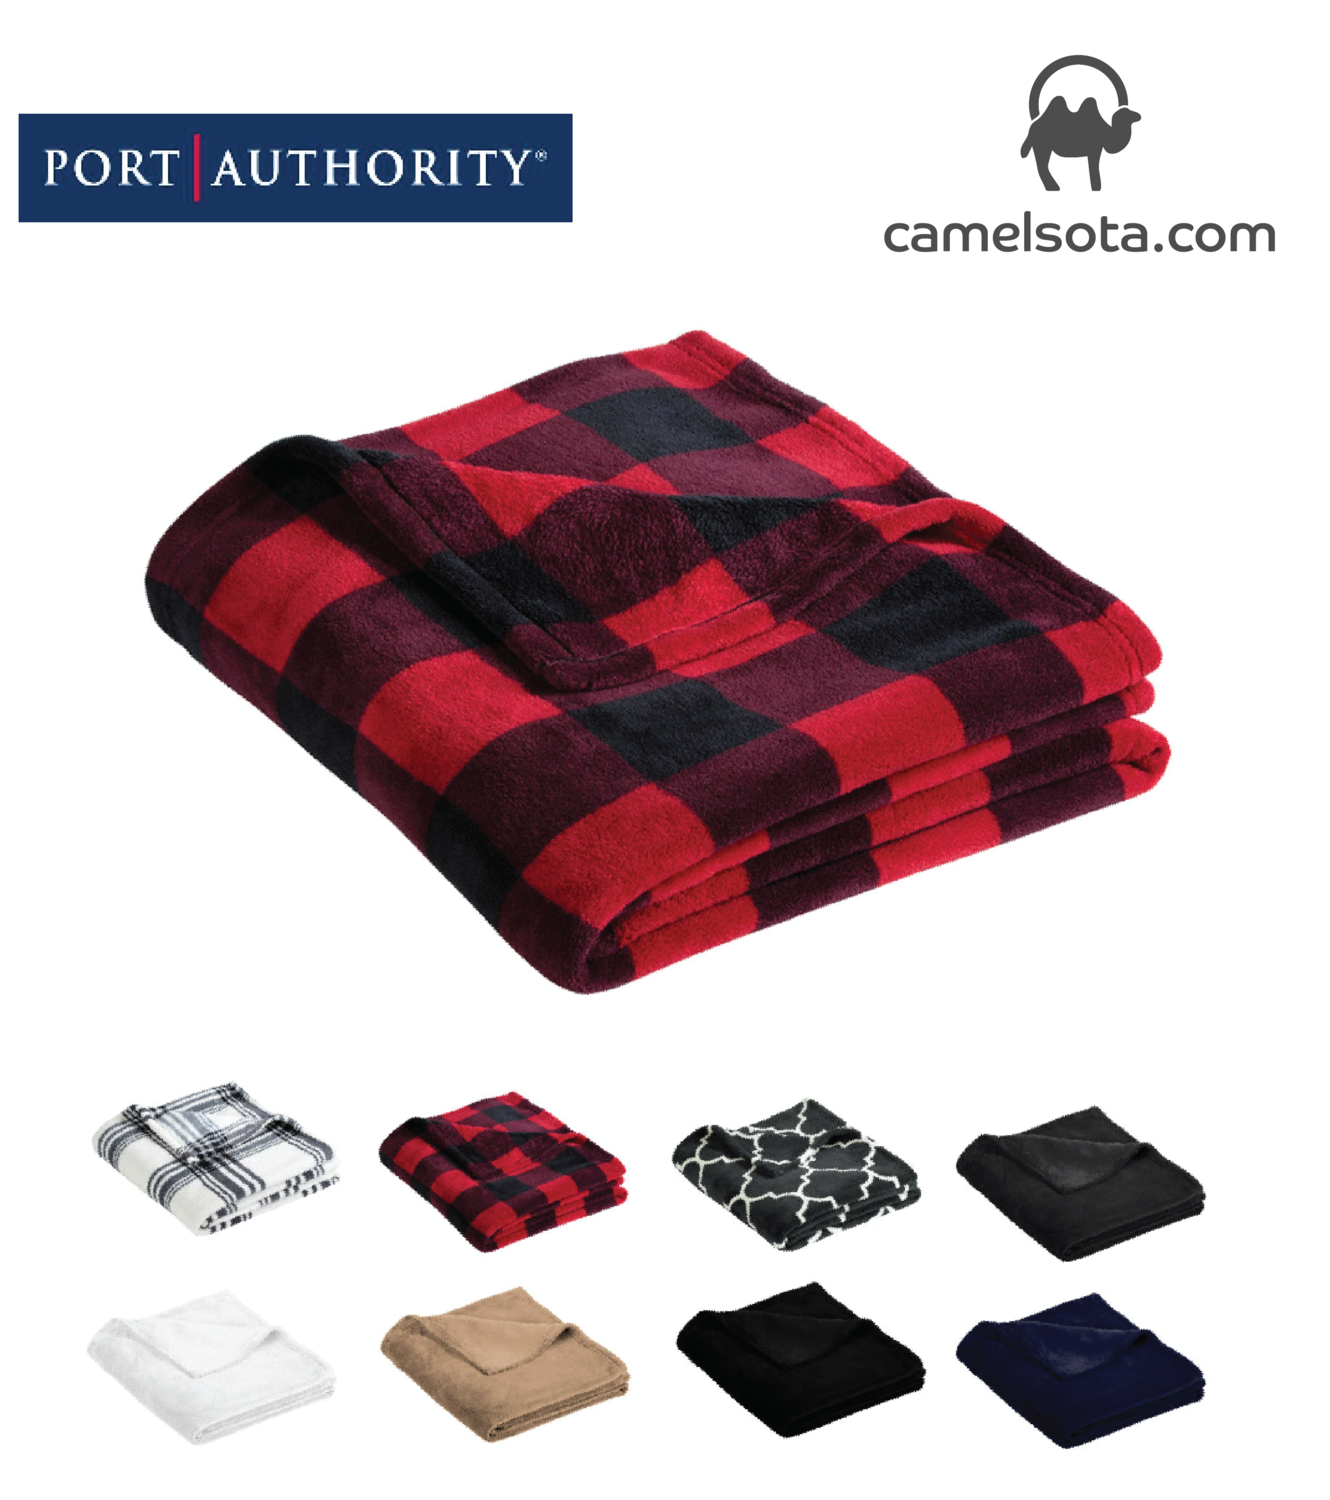 Custom Embroidered Port Authority Ultra Plush Blanket